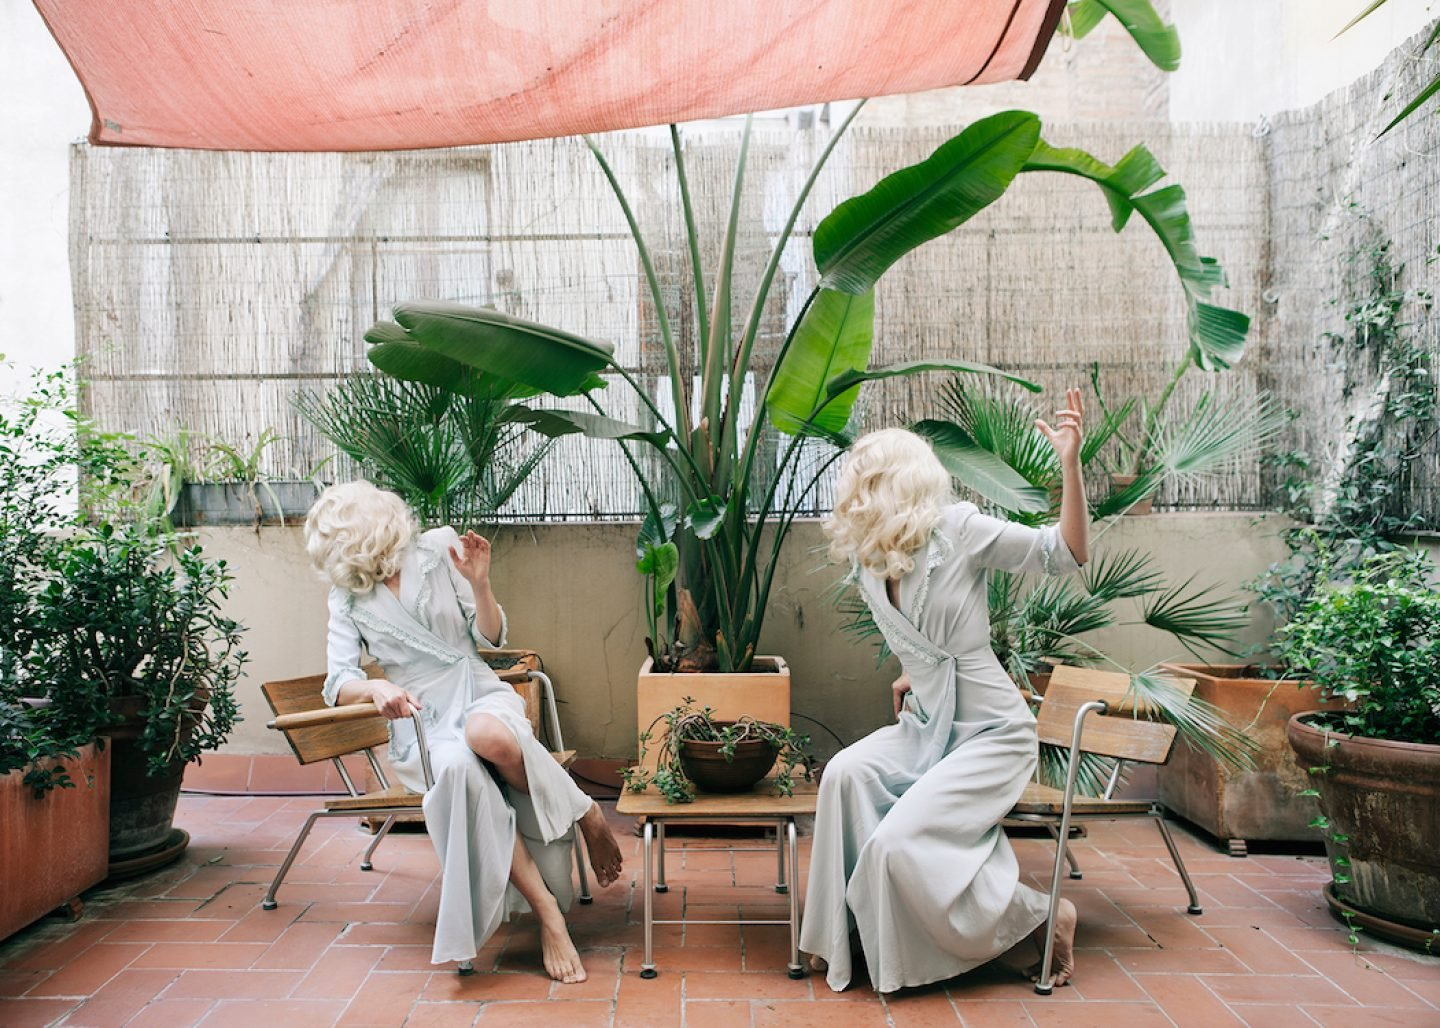 anjaniemi_photography-The Terrace © Anja Niemi